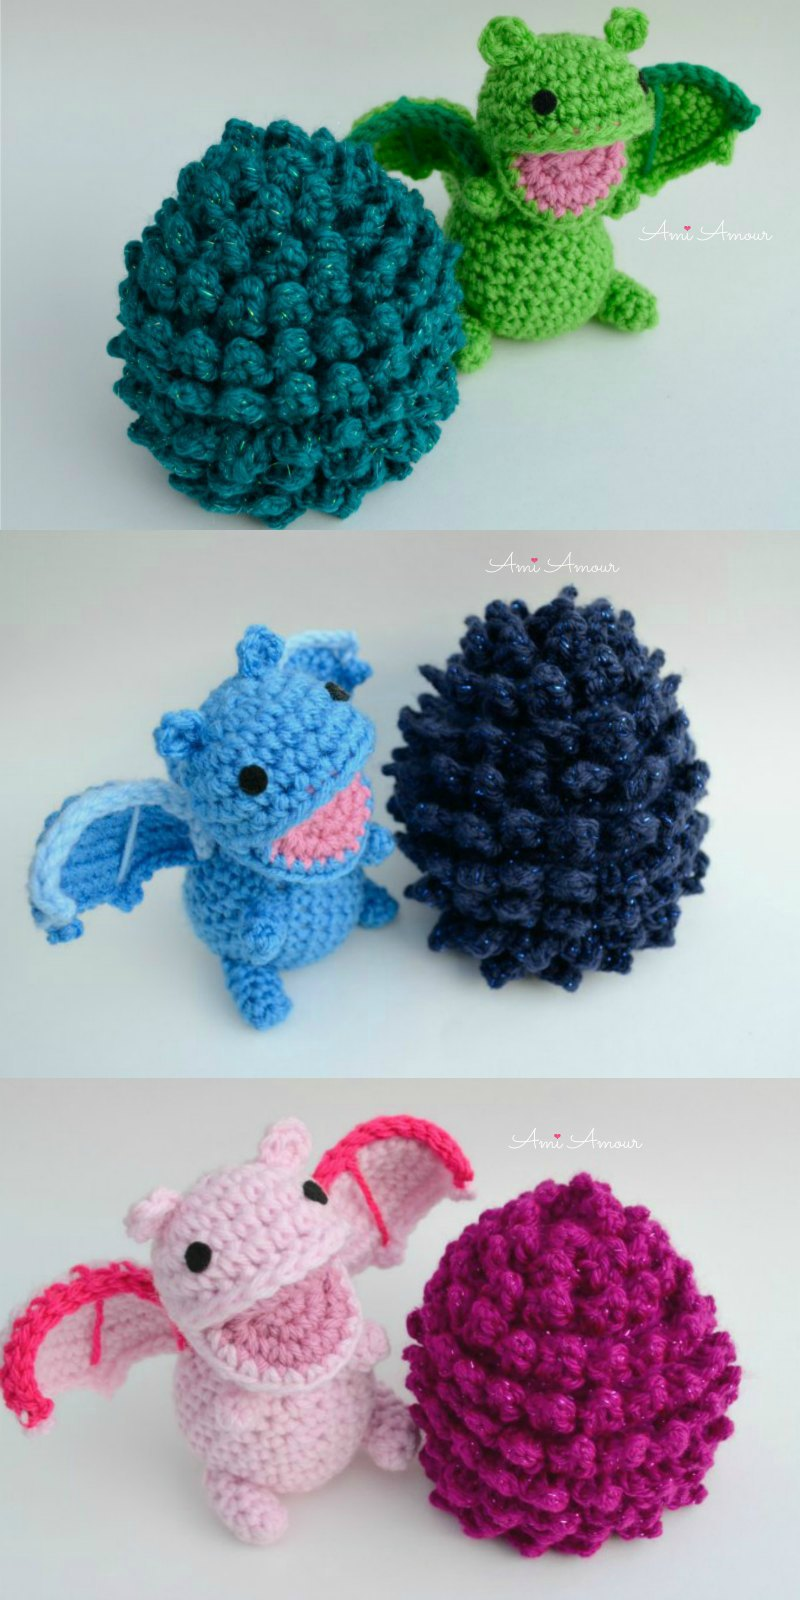 Crochet Dragons with Colored Eggs